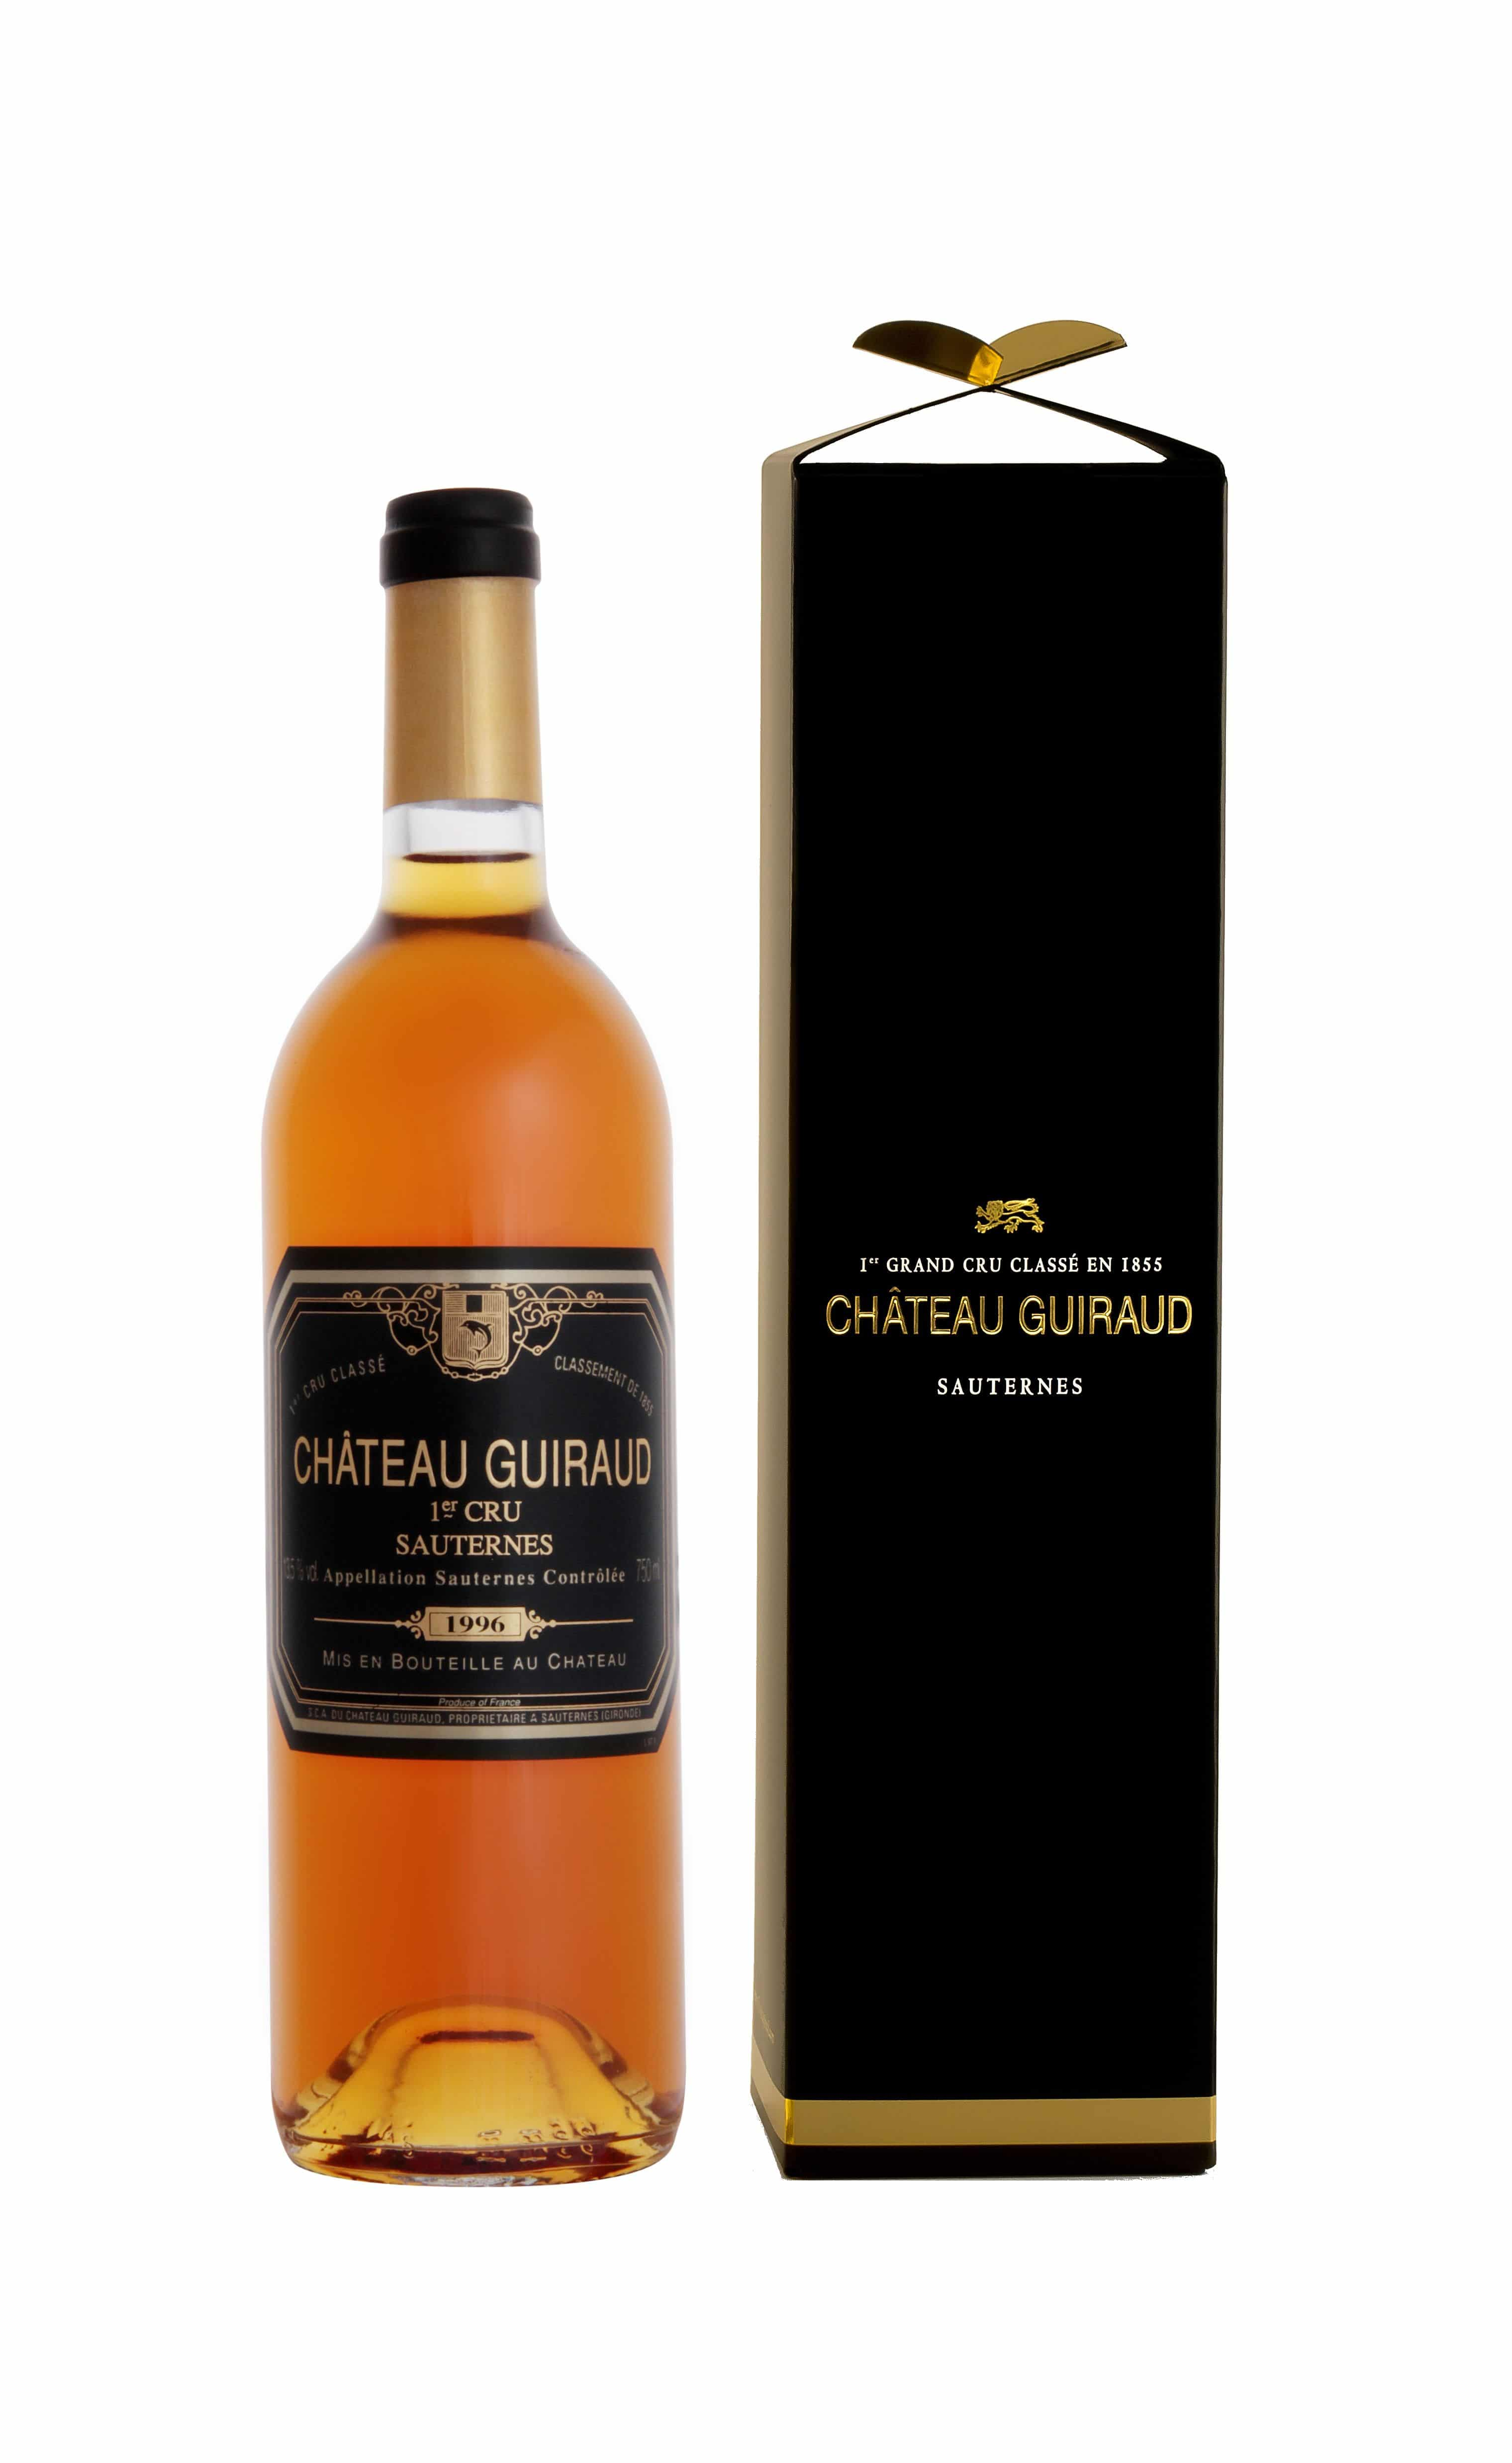 We Are Glad To Introduce You The Amazing Release Of Chteau Guiraud 1996 1st Cru Class Sauternes Celebrating 20 Years Organic Commitment